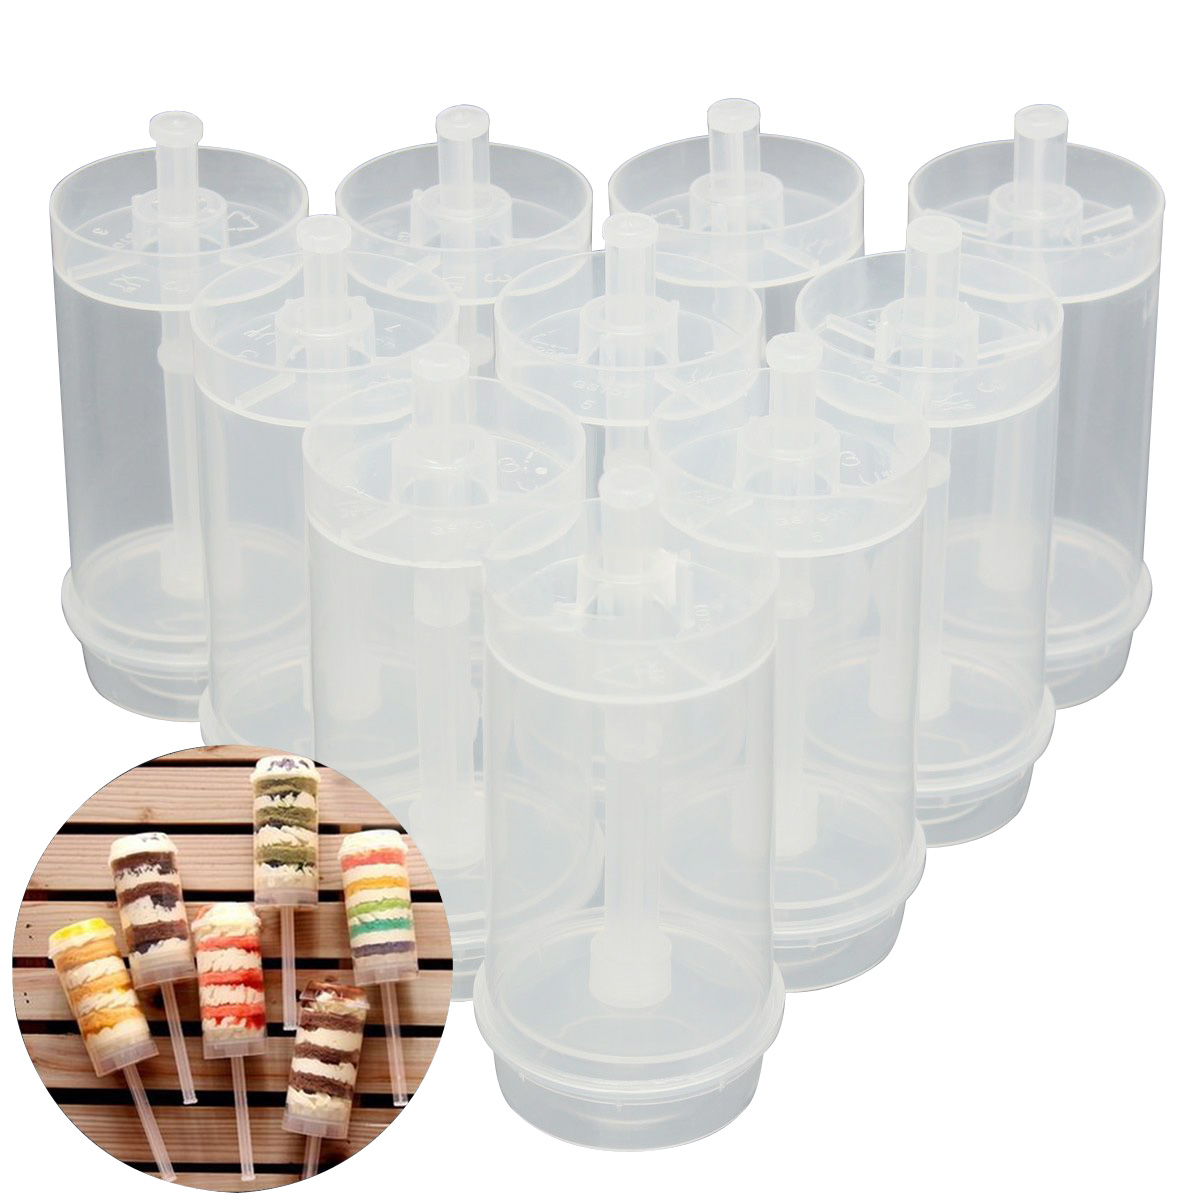 50x Kuchen Dessert Push Up Pop Container Shooter Pop für Party Verwenden